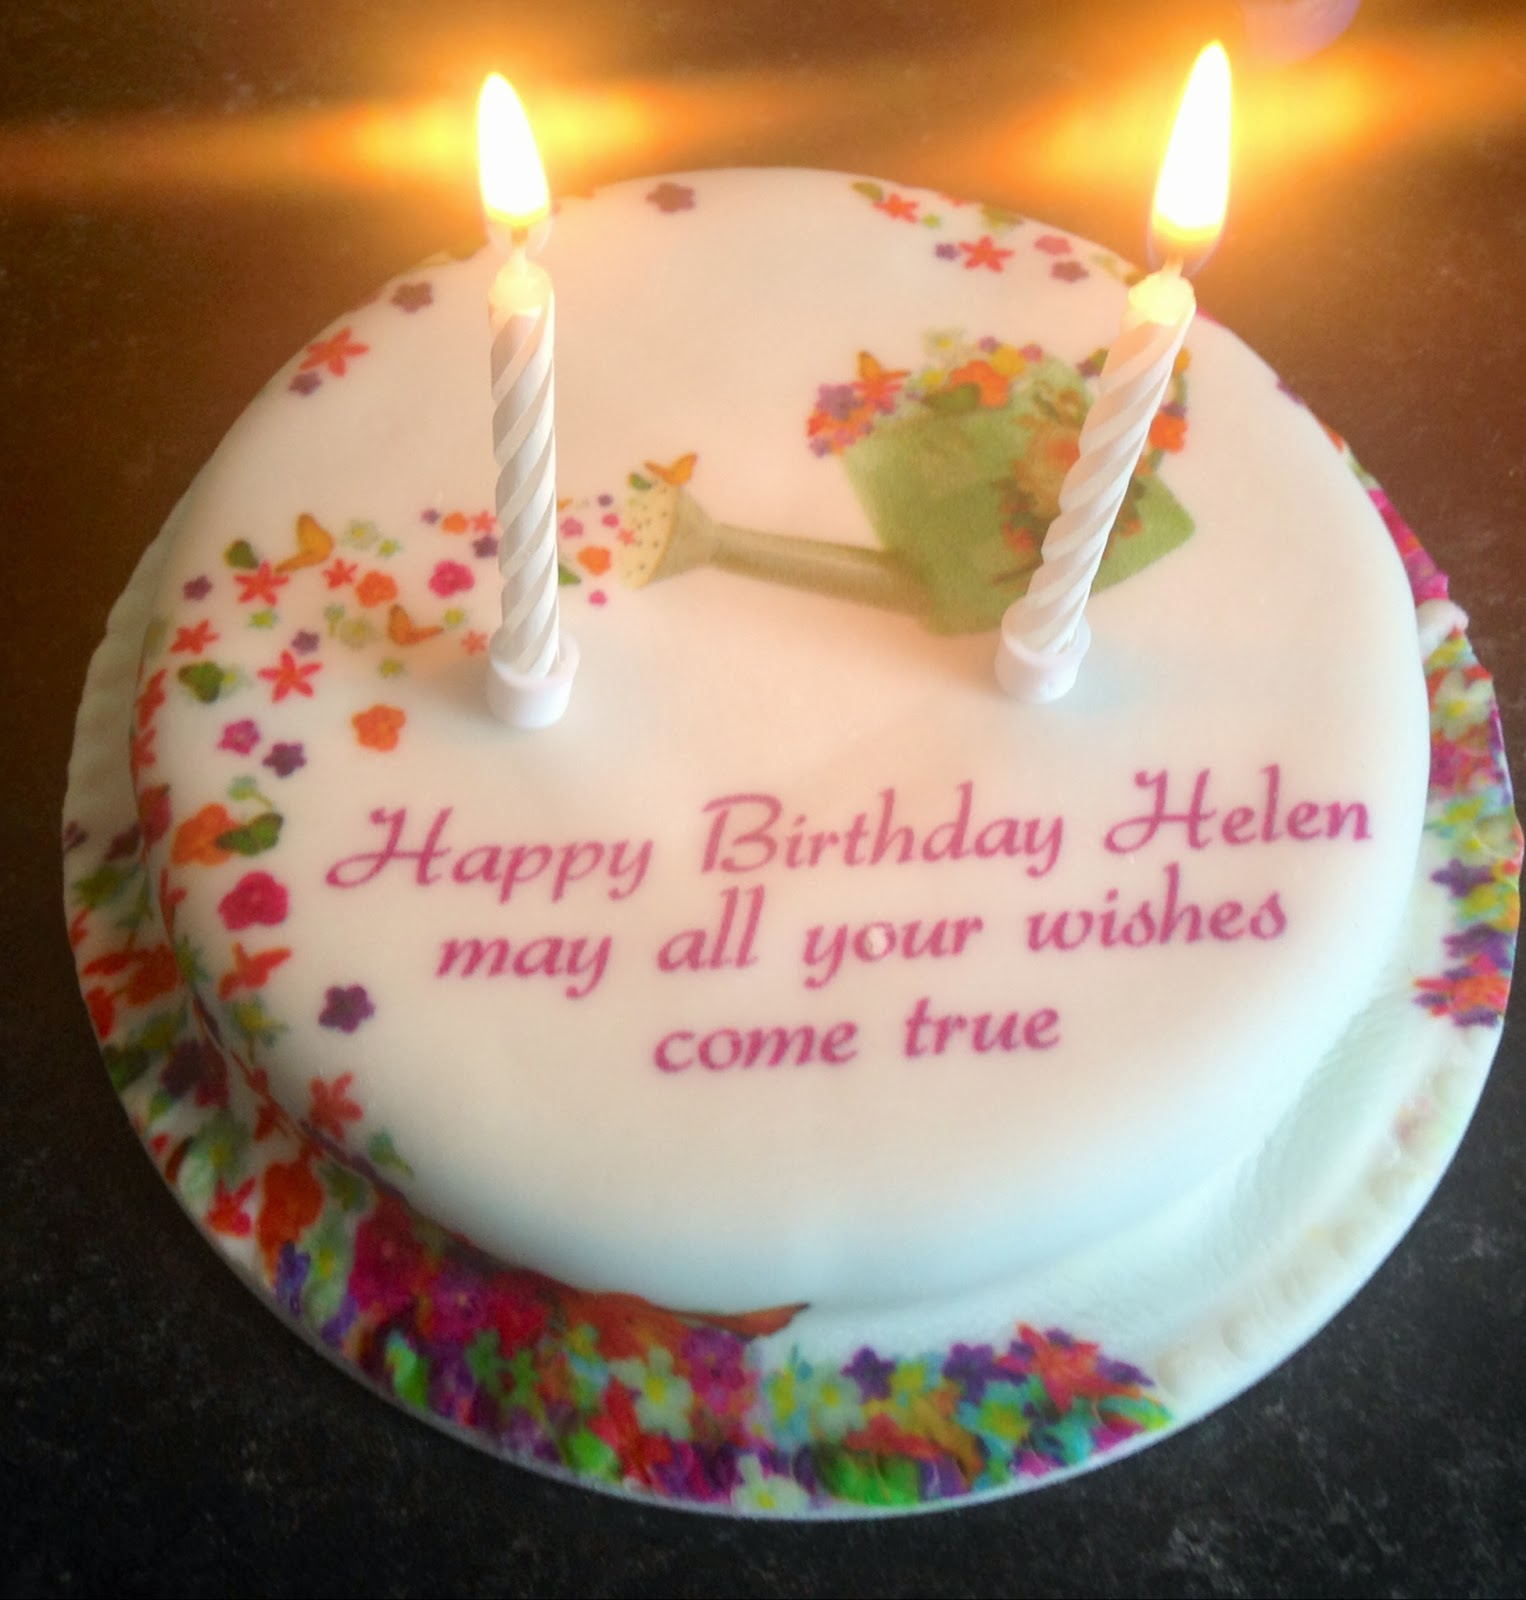 helen wedding cakes zimbabwe helen cake ideas and designs 15196